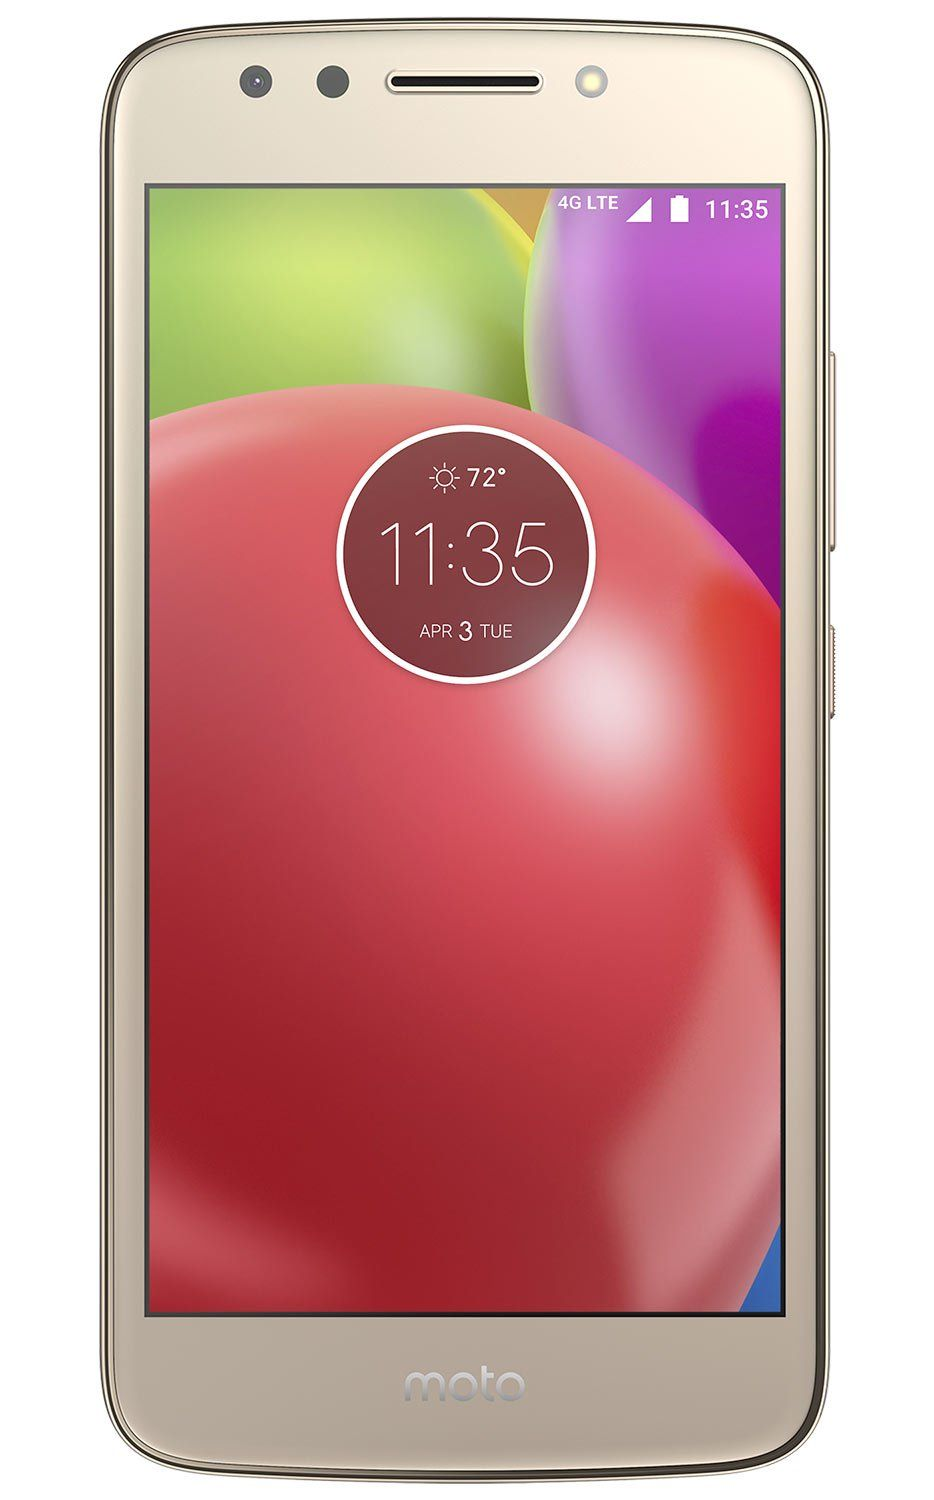 Coupon Codes Discount $115 on Motorola moto E4 at T-Mobile | Mobile